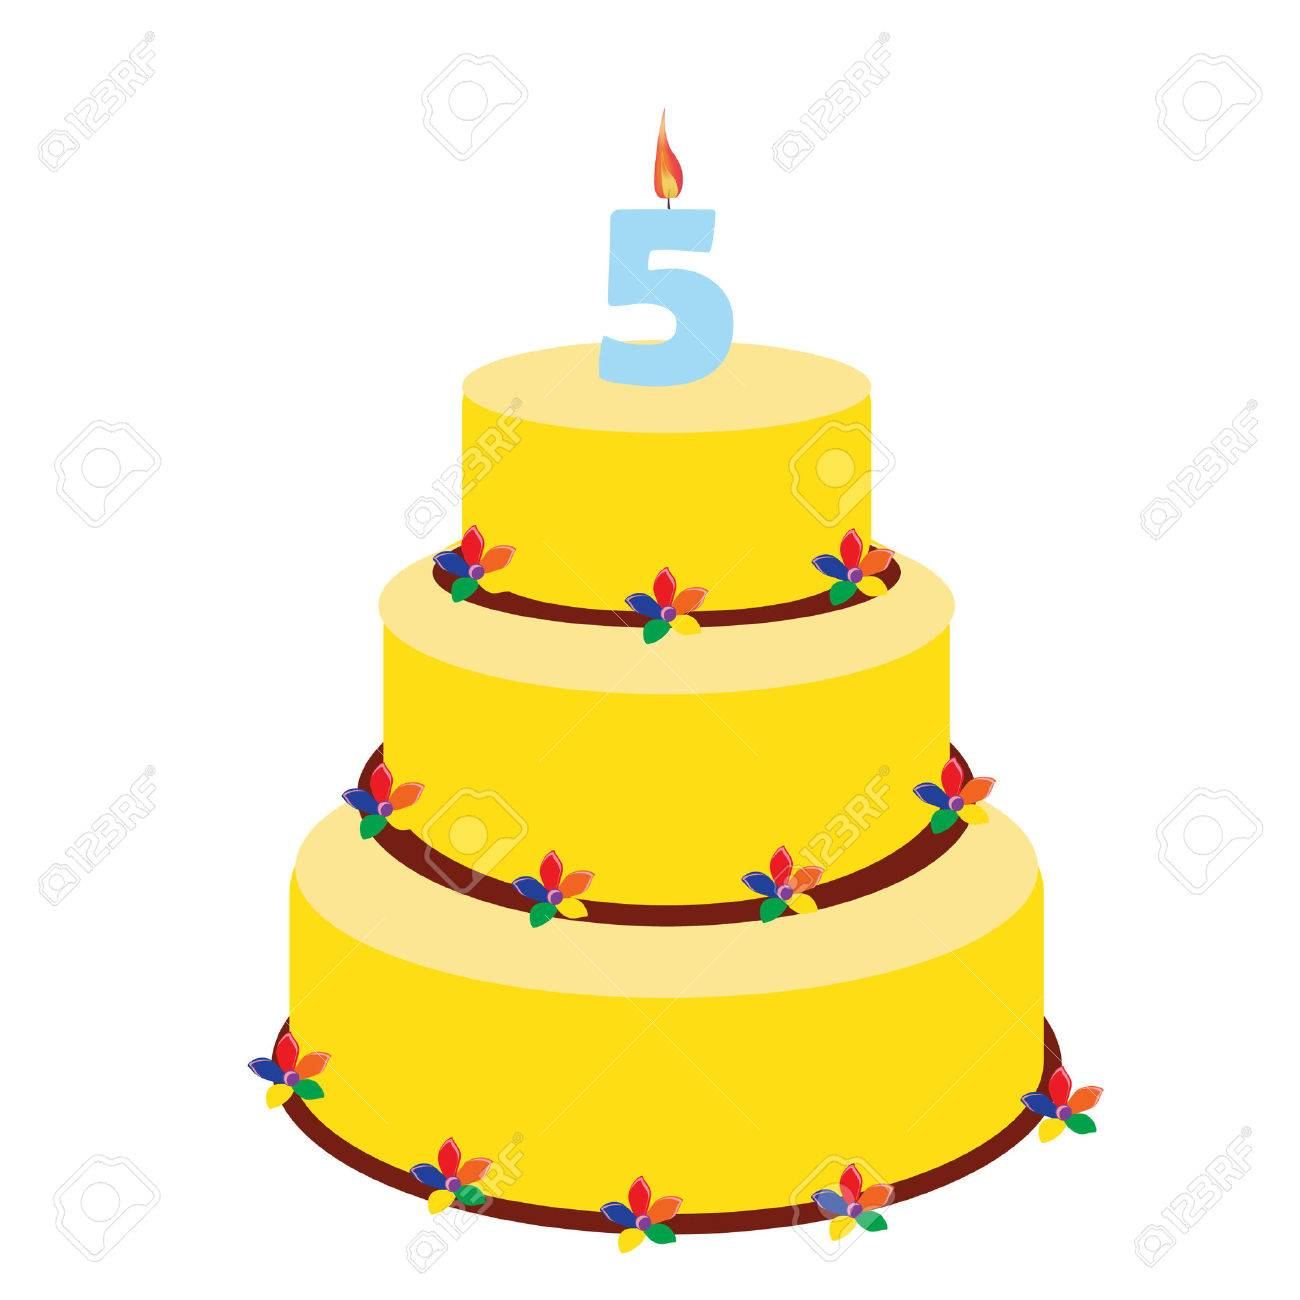 Pleasing Birthday Cake With Birthday Candle Number Five On Top Fifth Funny Birthday Cards Online Bapapcheapnameinfo